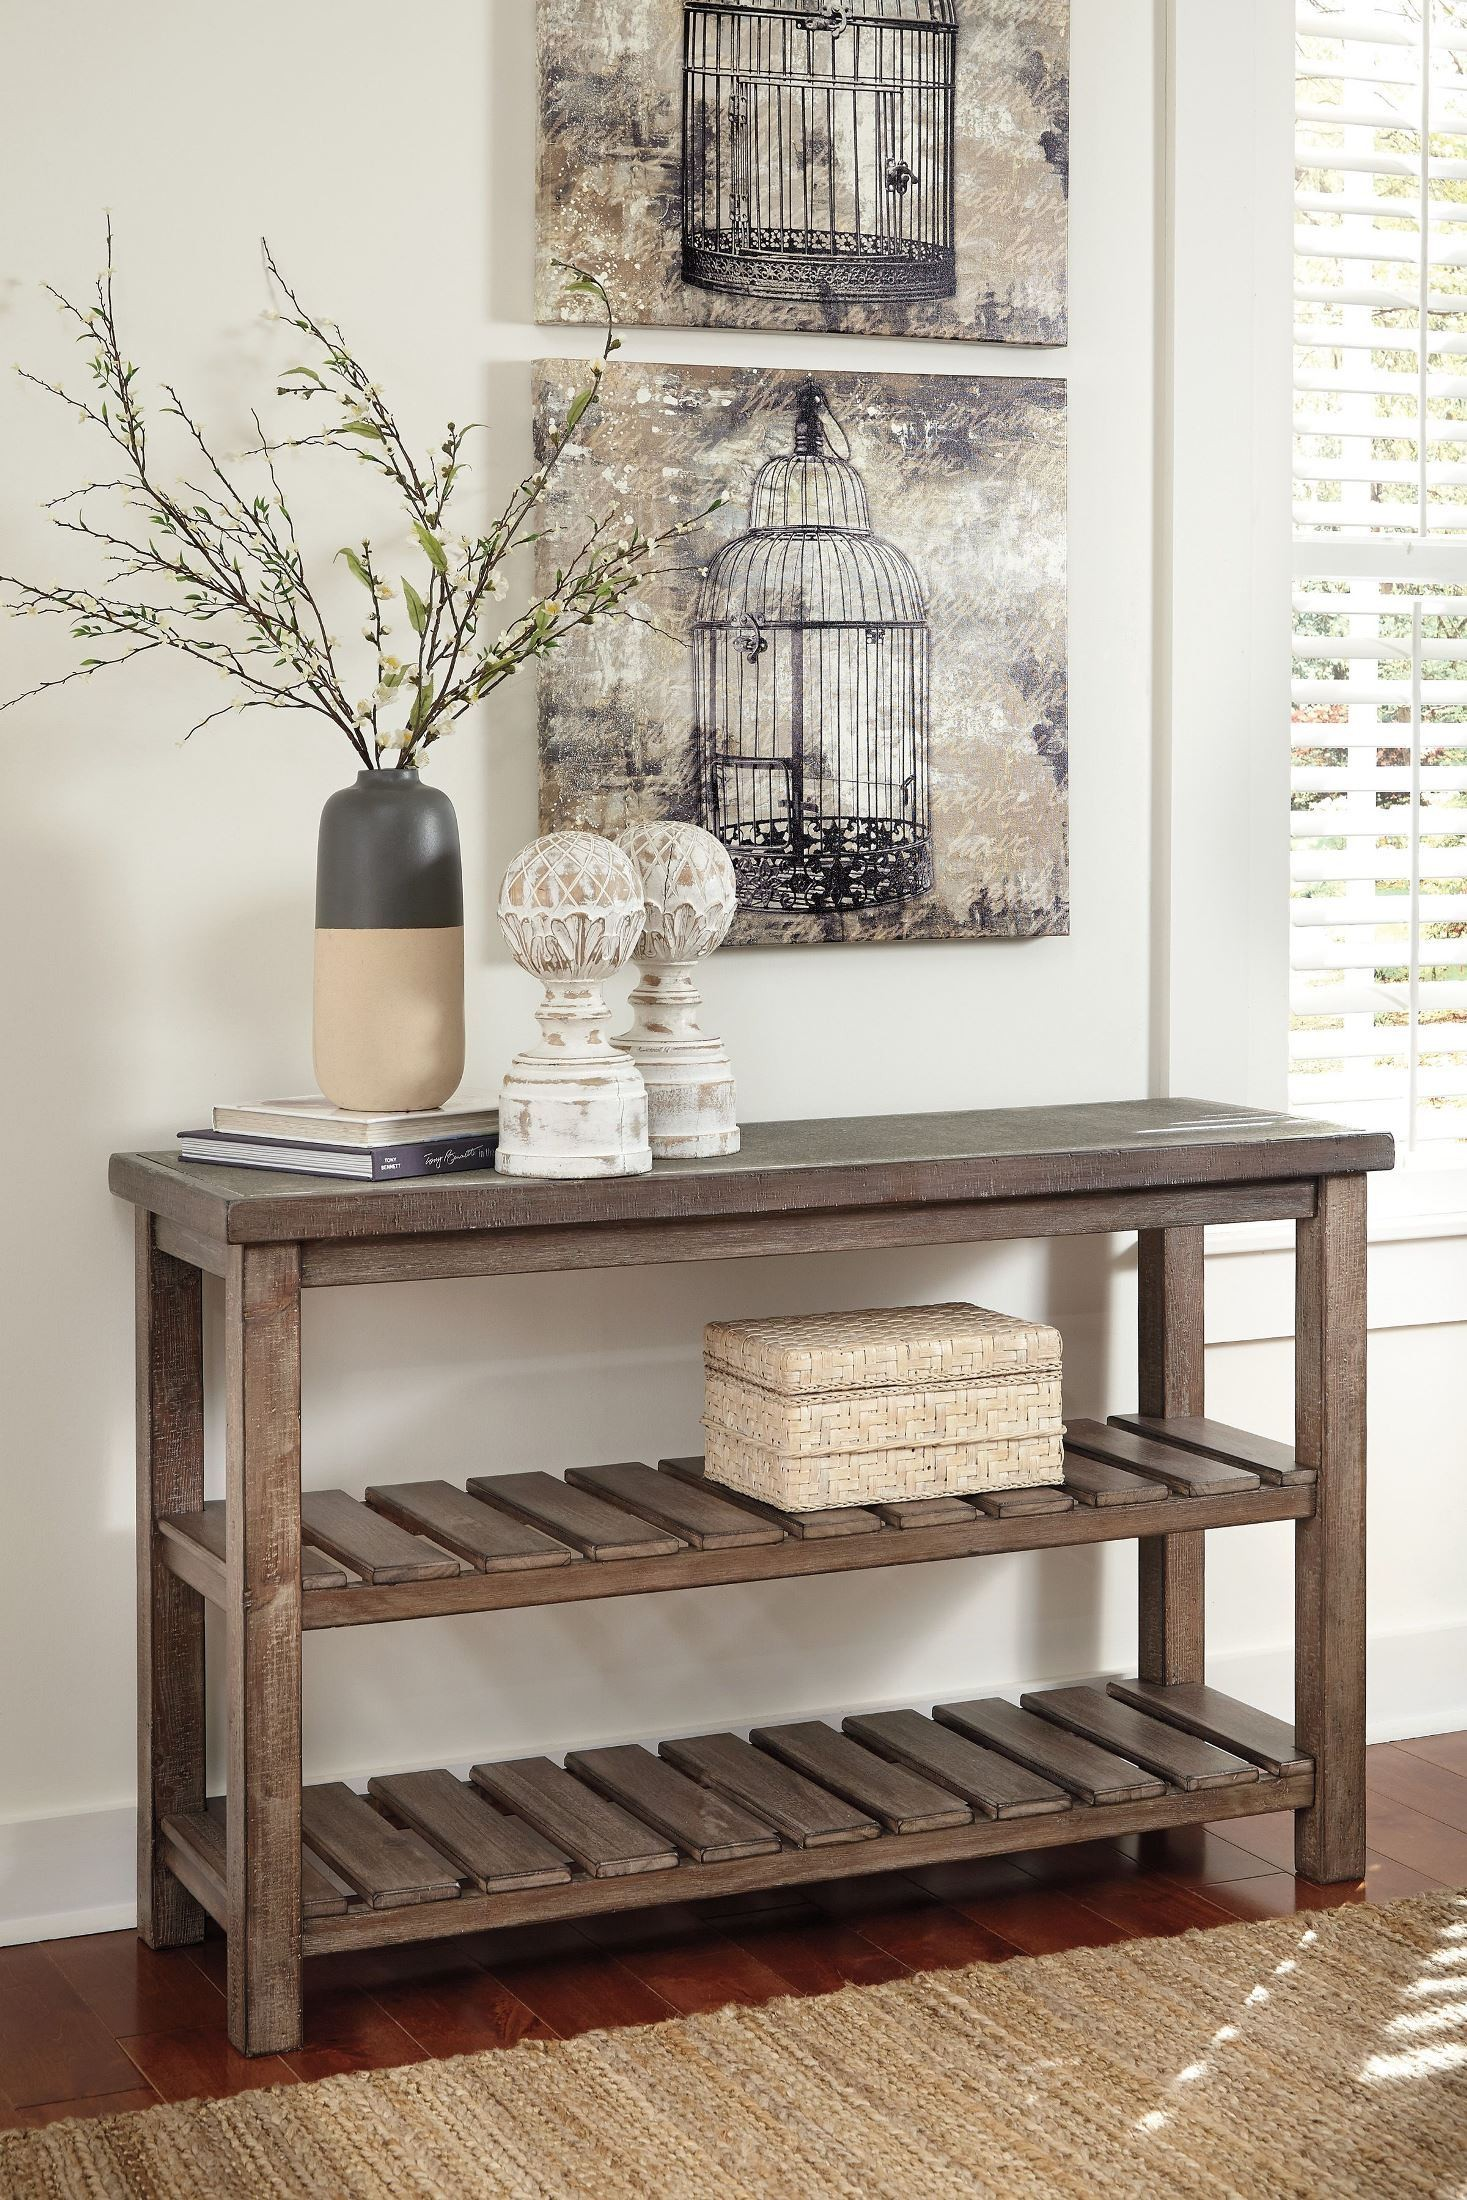 Narrow Console Table Australia Vennilux Sofa Table From Ashley T500 104 Coleman Furniture